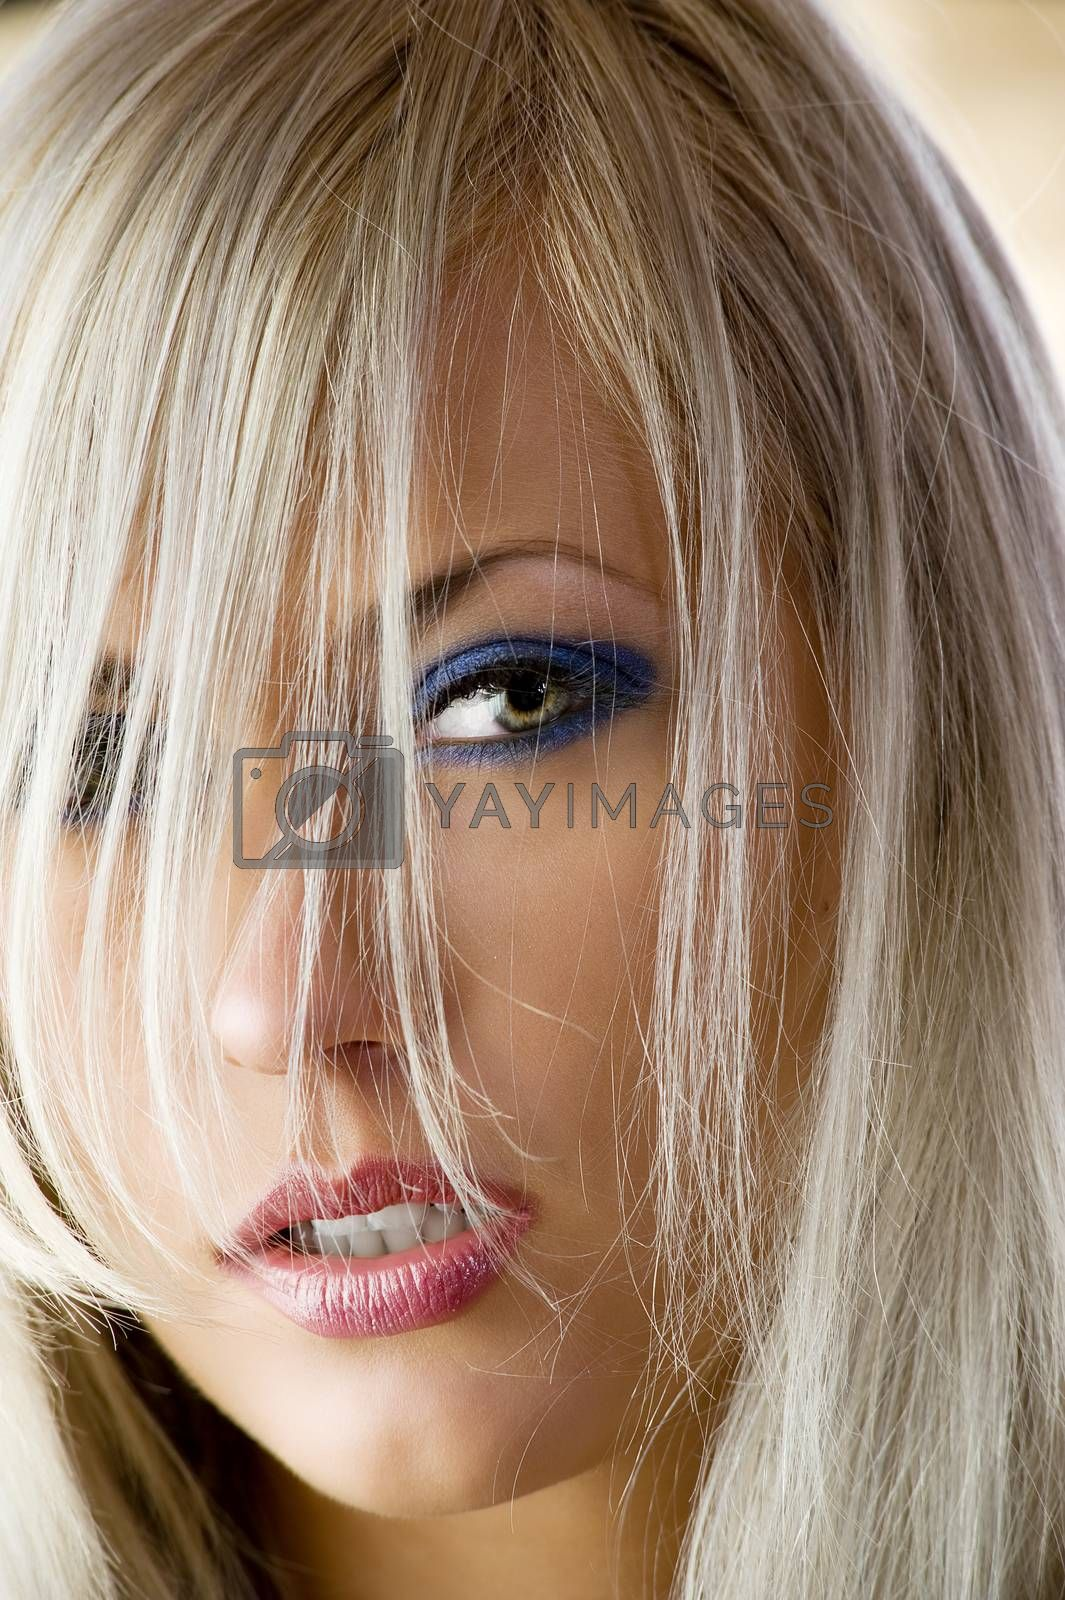 Royalty free image of the hair and eye by fotoCD